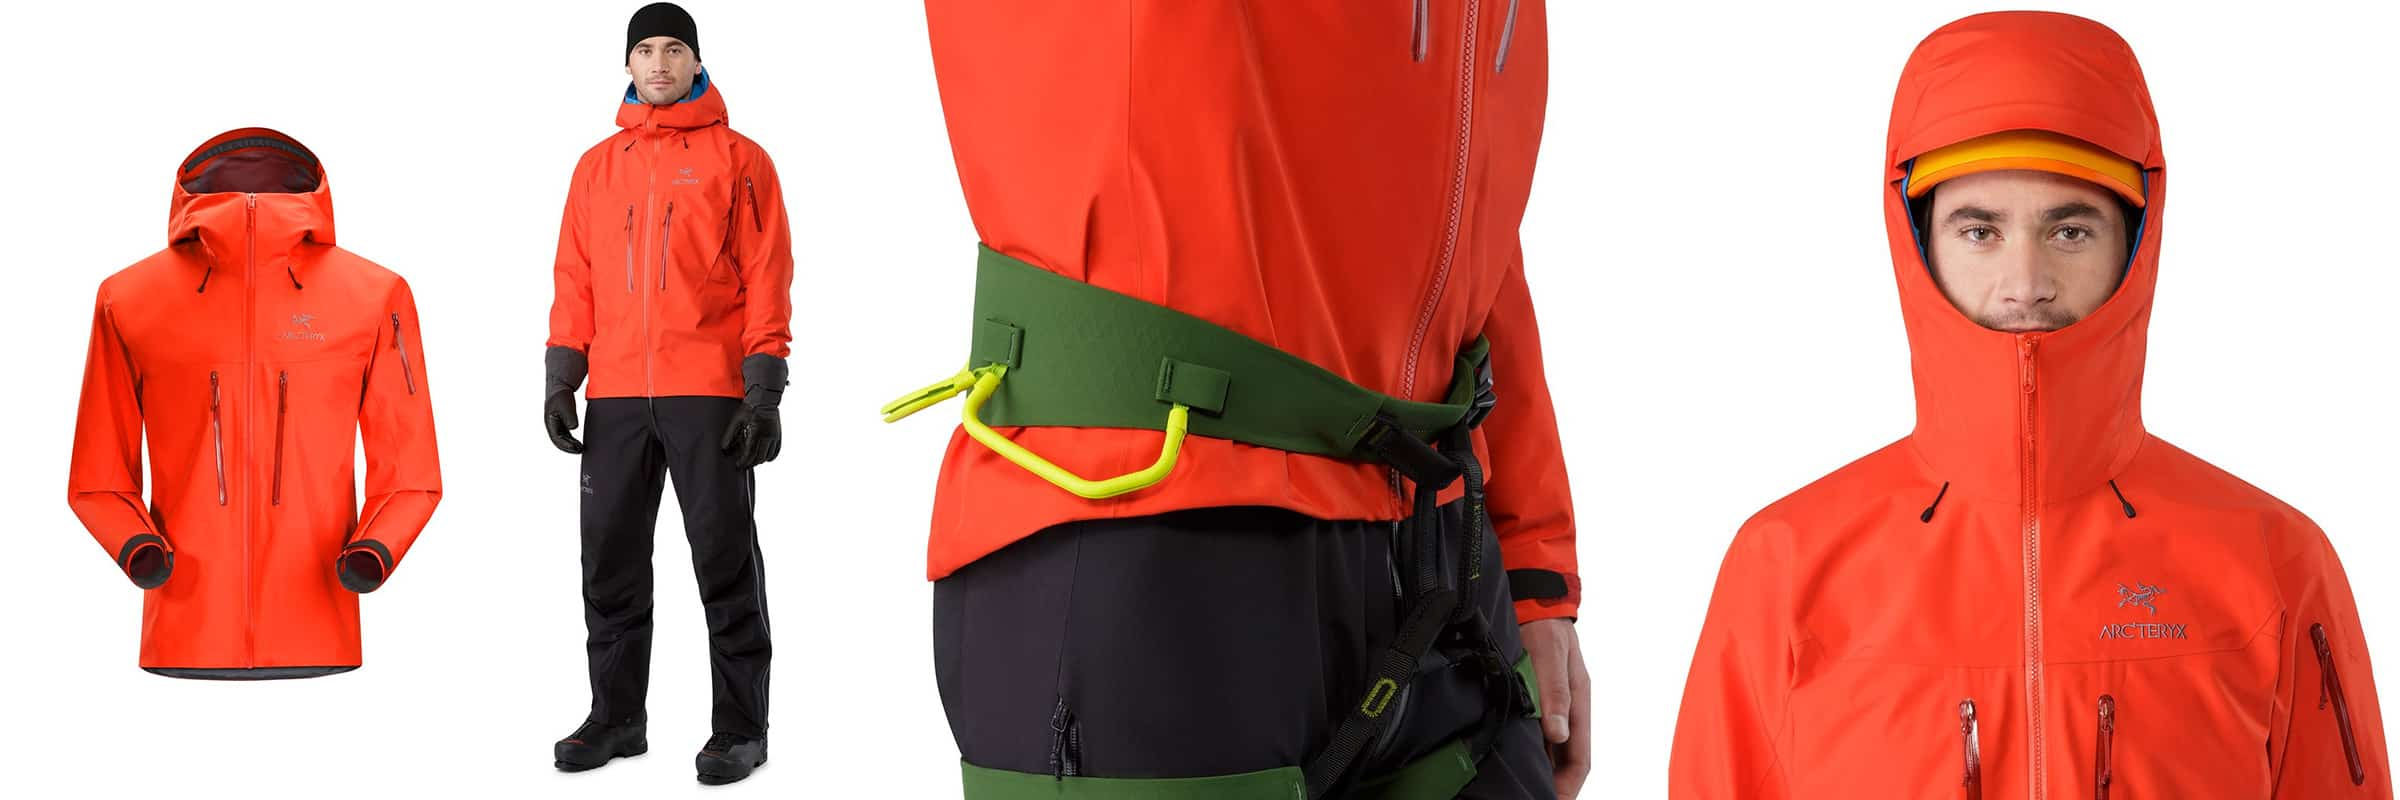 arcteryx alpinism and climbing collection for ihm